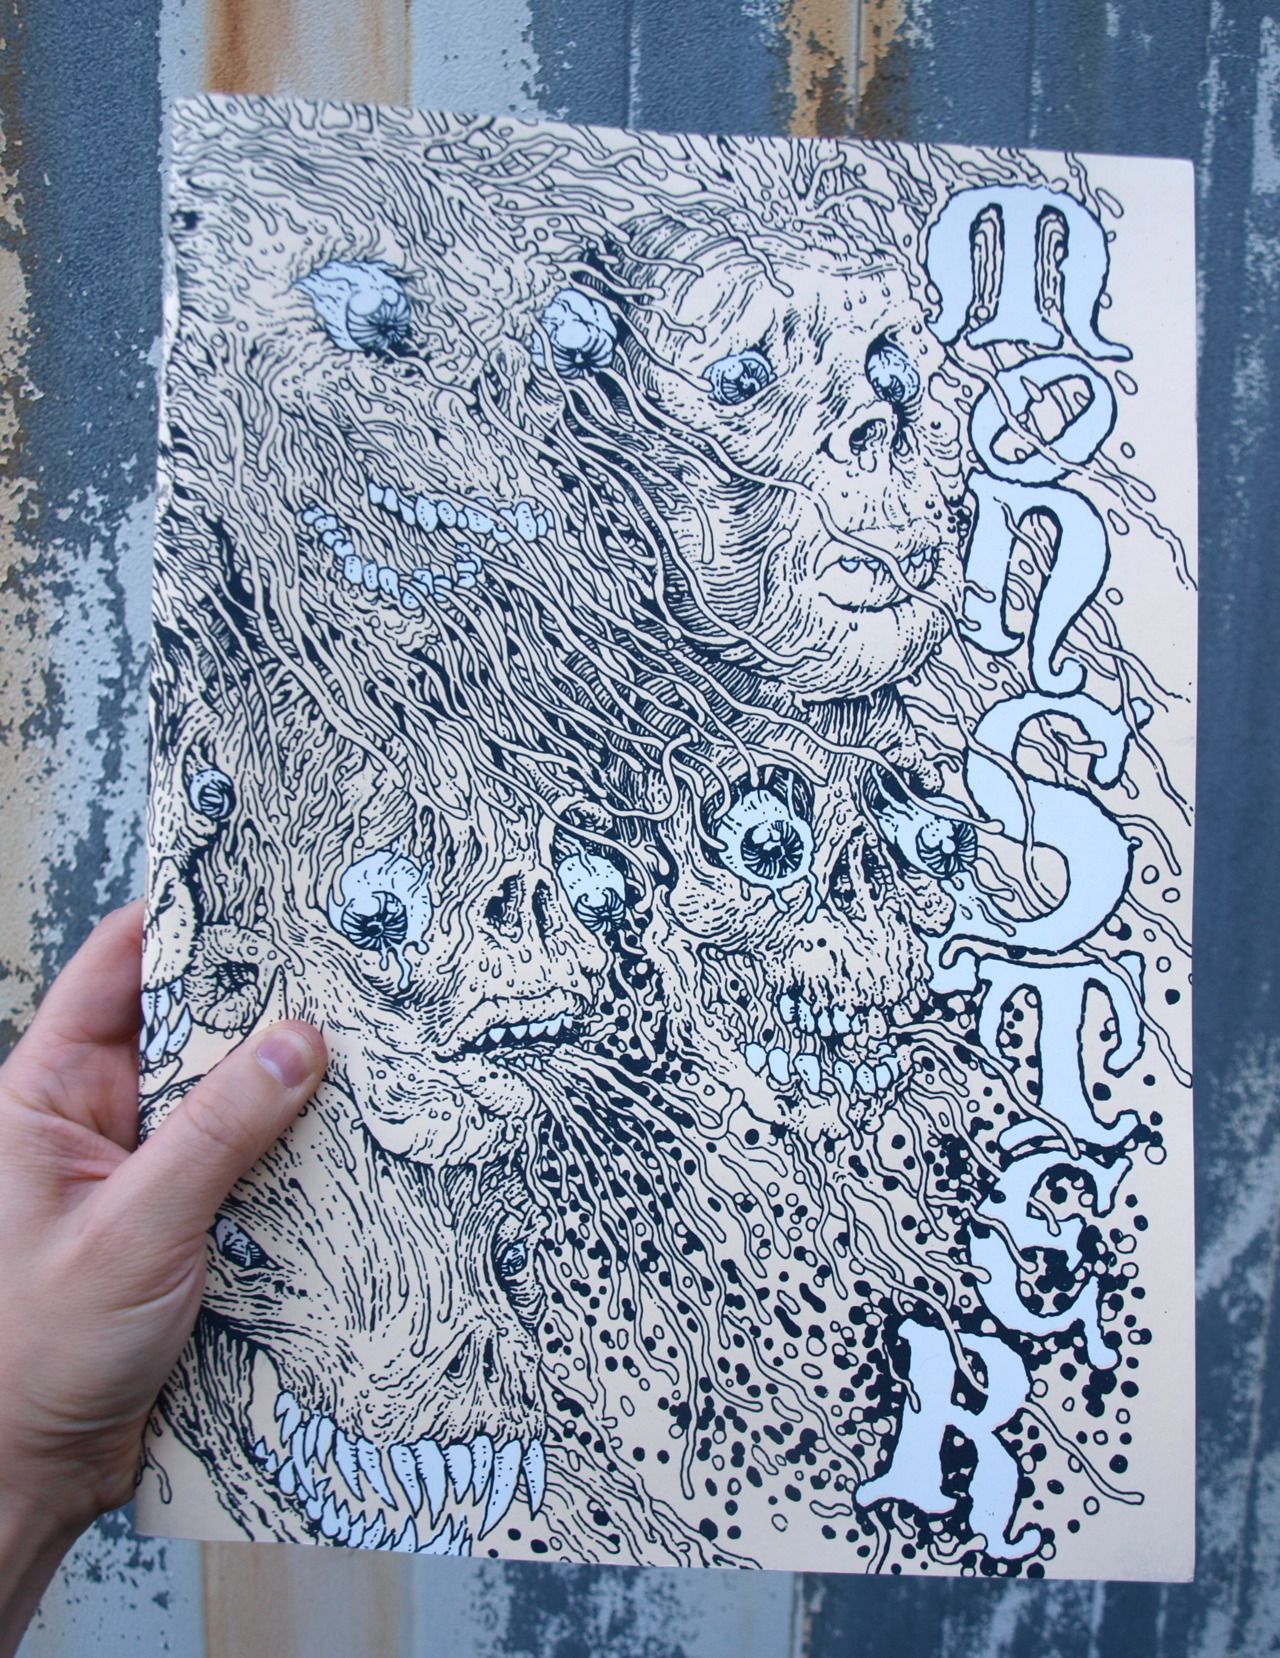 Monster: Comic anthology edited and published by Paul Lyons, in stock now at Chapel Hill Comics! Cover silkscreen by Paul Lyons. This thing is huge; see man hand for scale! Featuring art by Michael DeForge, Brian Ralph, James Kochalka, Jim Rugg, Brian Chippendale, and many more! Adults only.